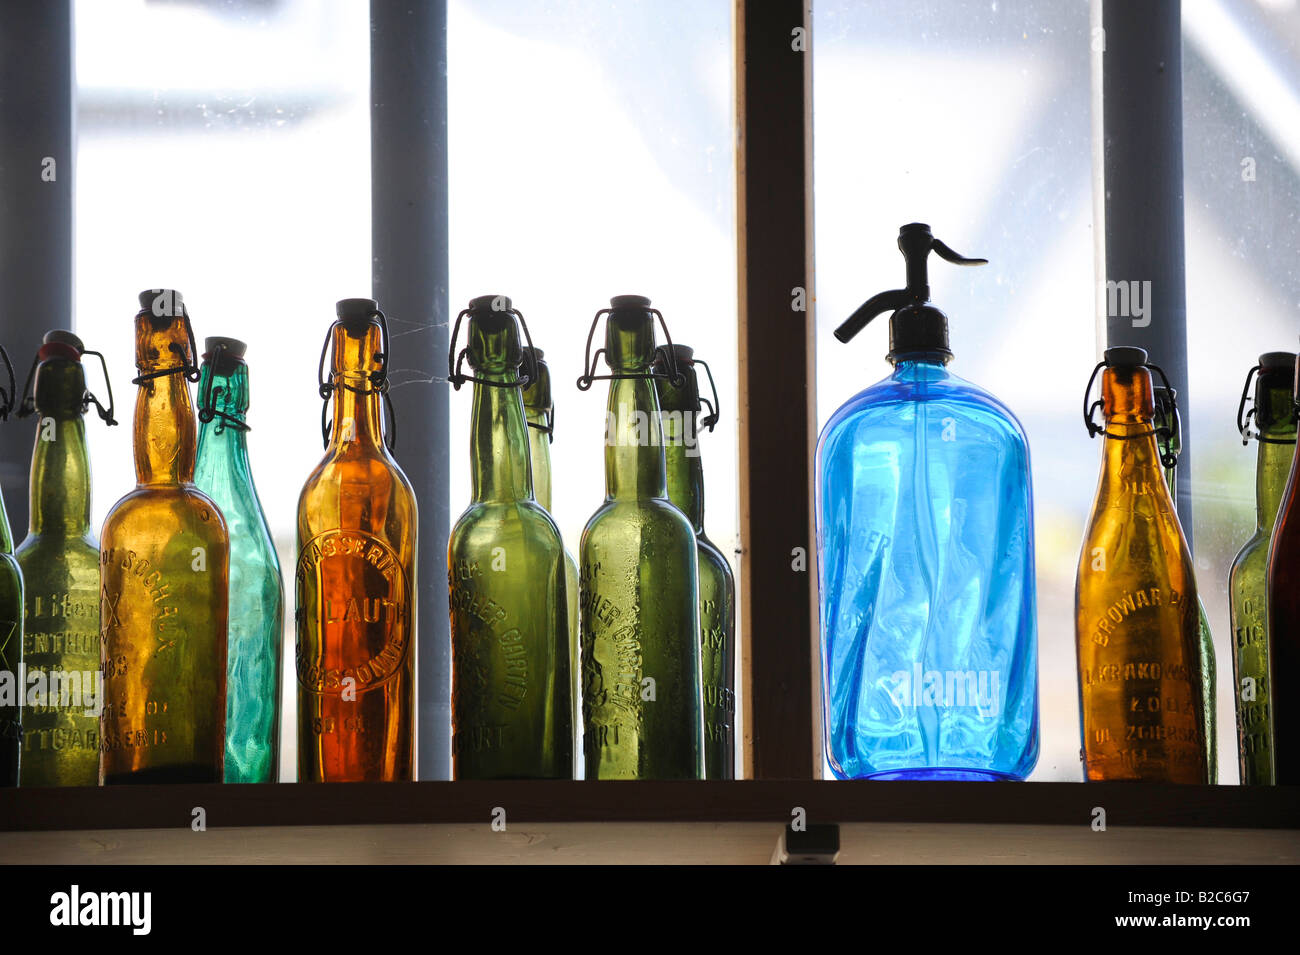 Colourful glass bottles in front of a window Stock Photo